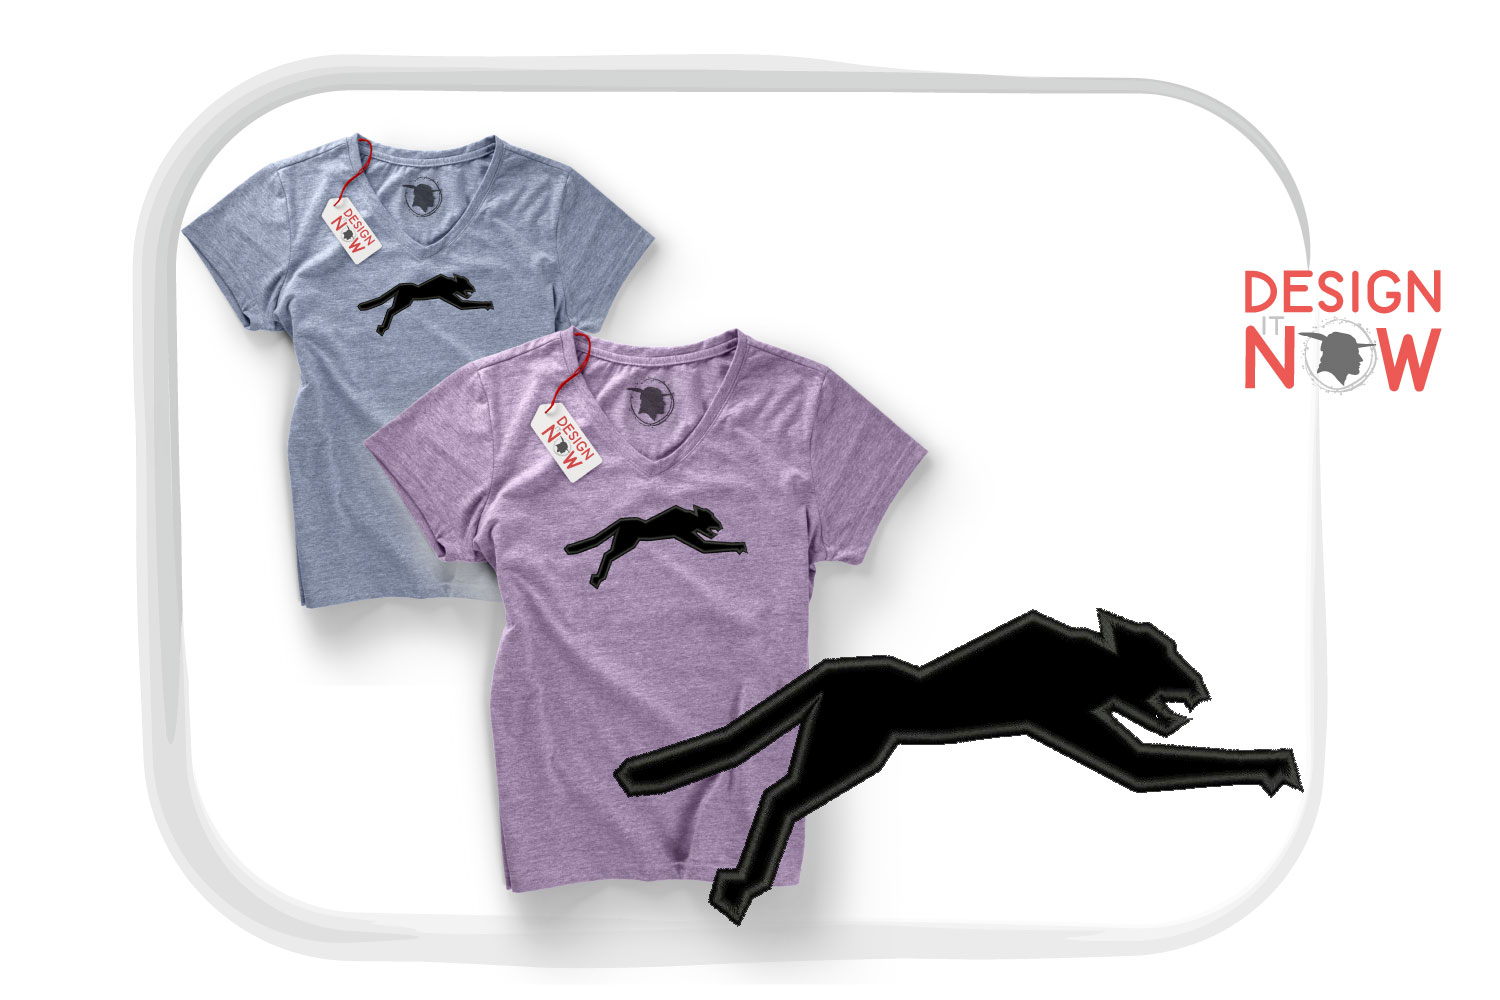 Panther Applique Embroidery Design, Puma Embroidery Pattern example image 2